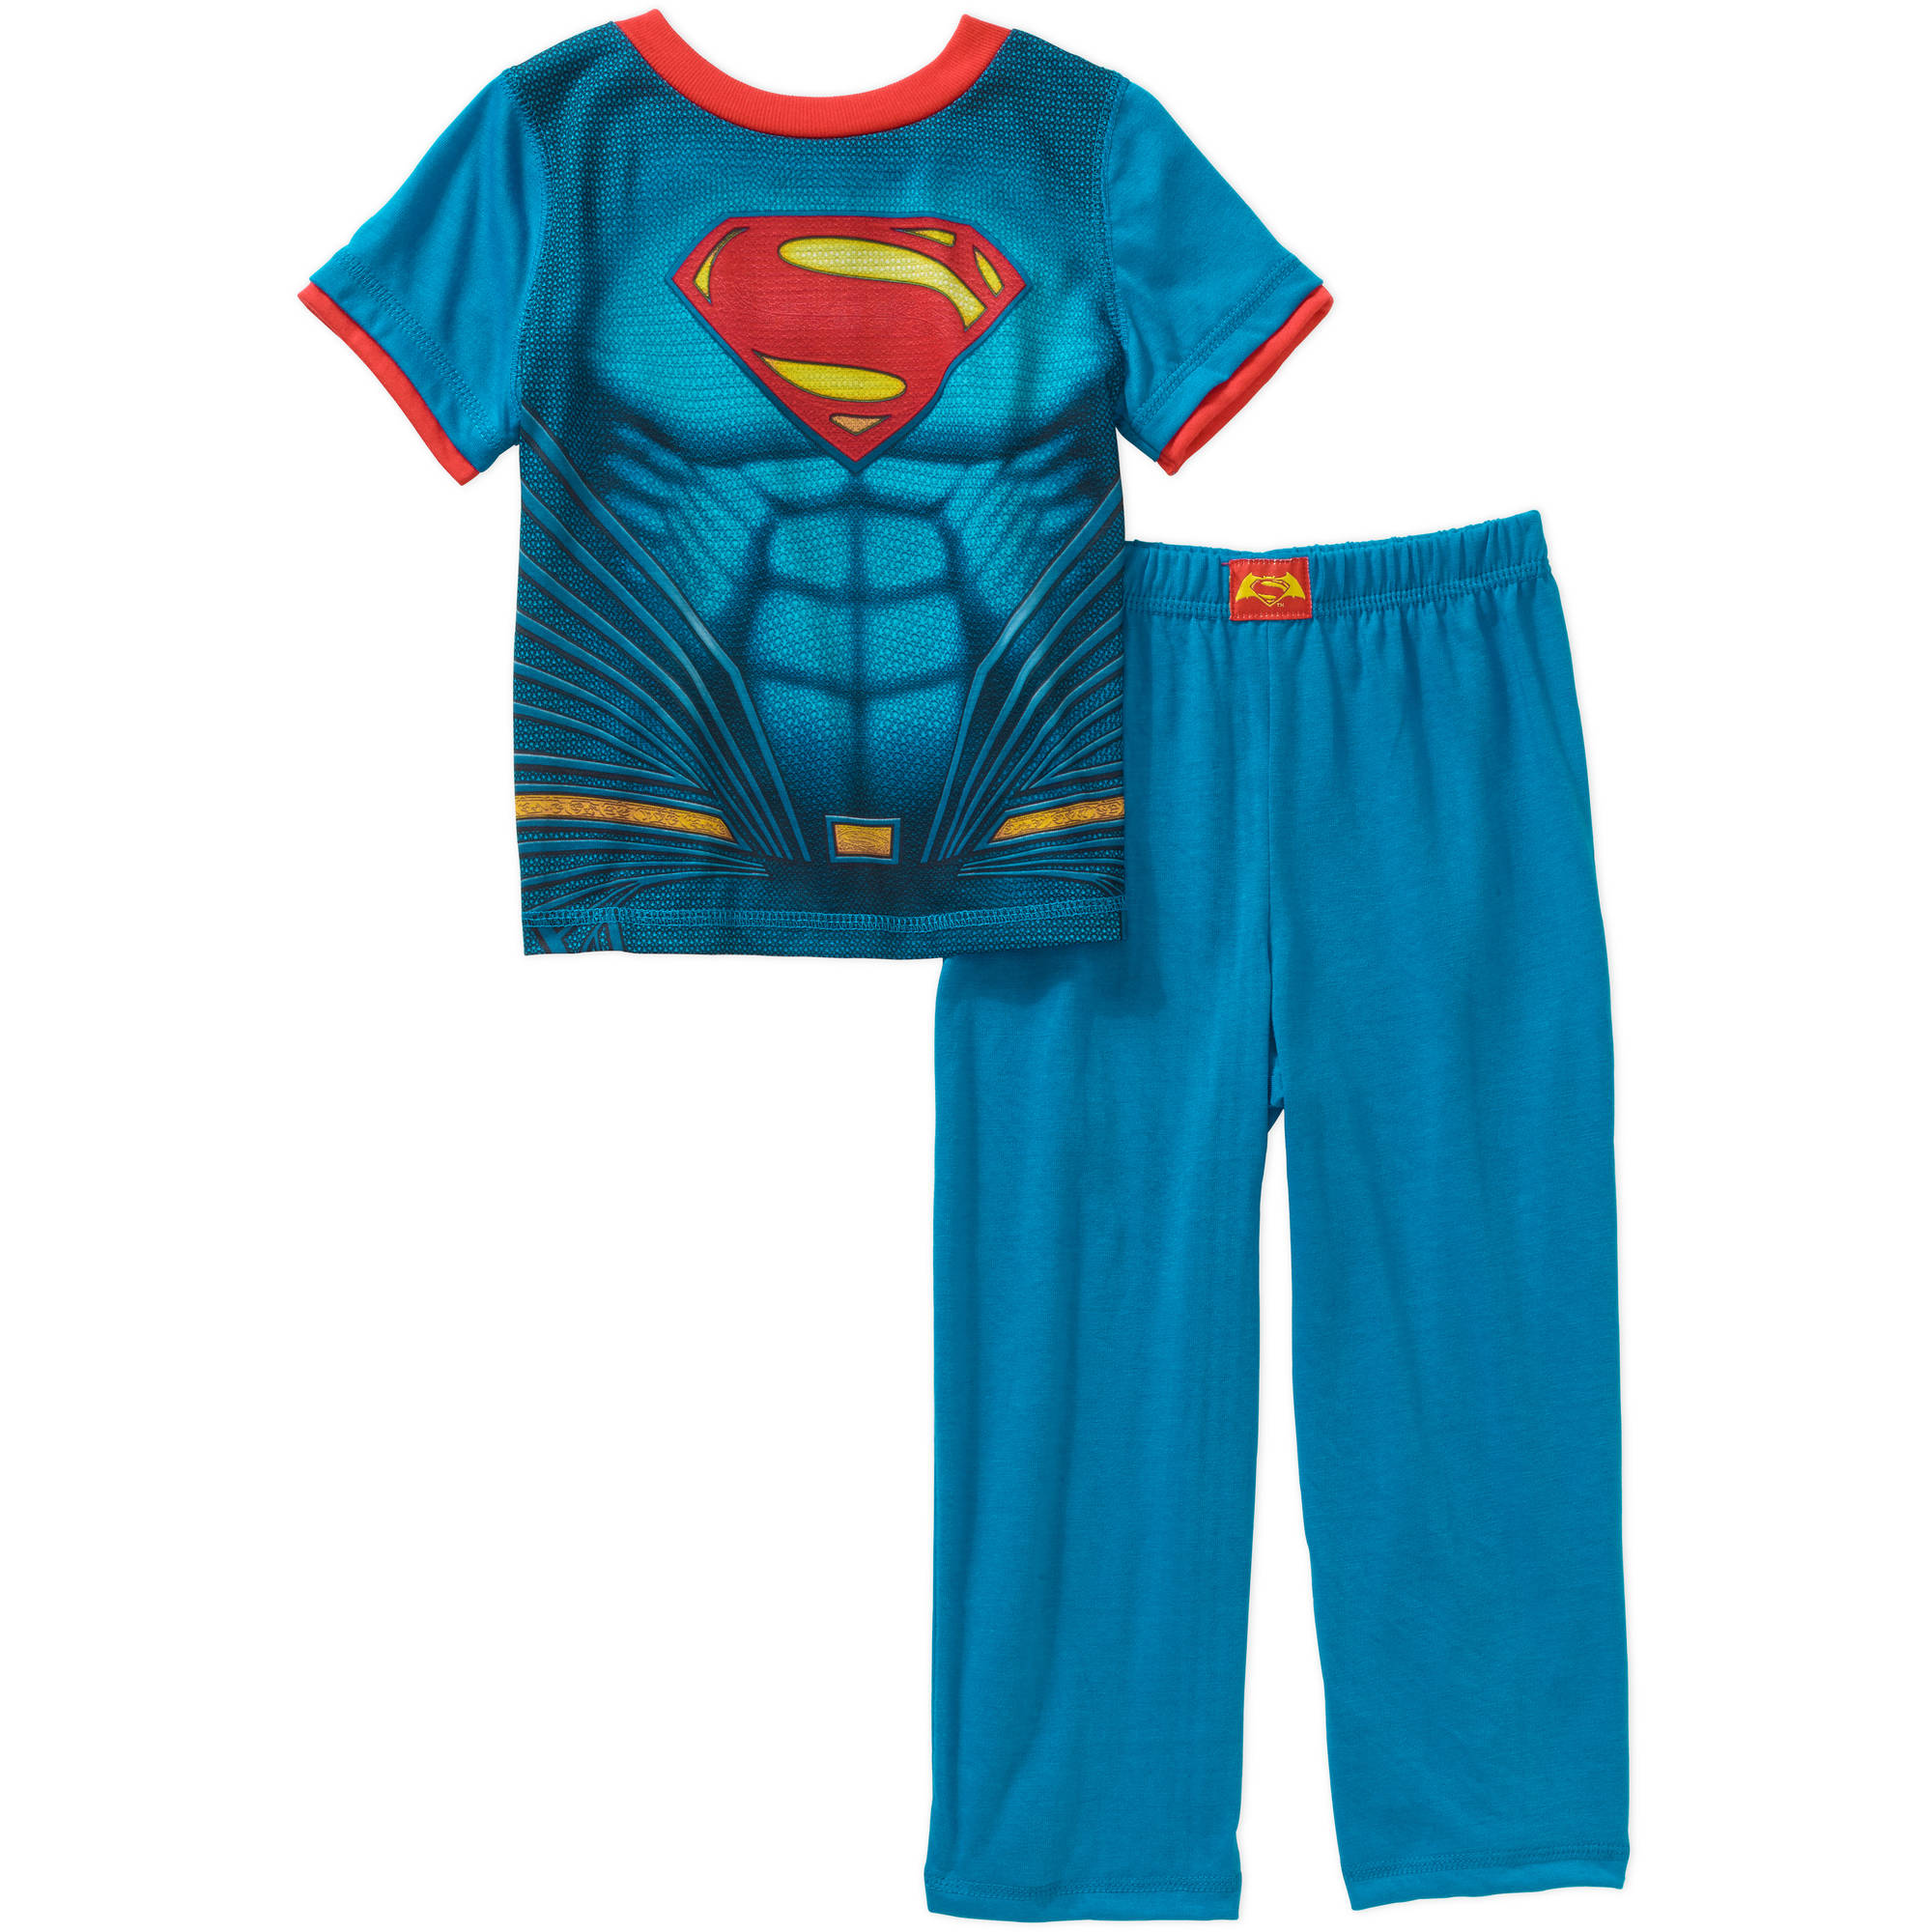 Toddler Boys' Short Sleeve Caped 3-Piece Pajama Sleepwear Set - Online Exclusive